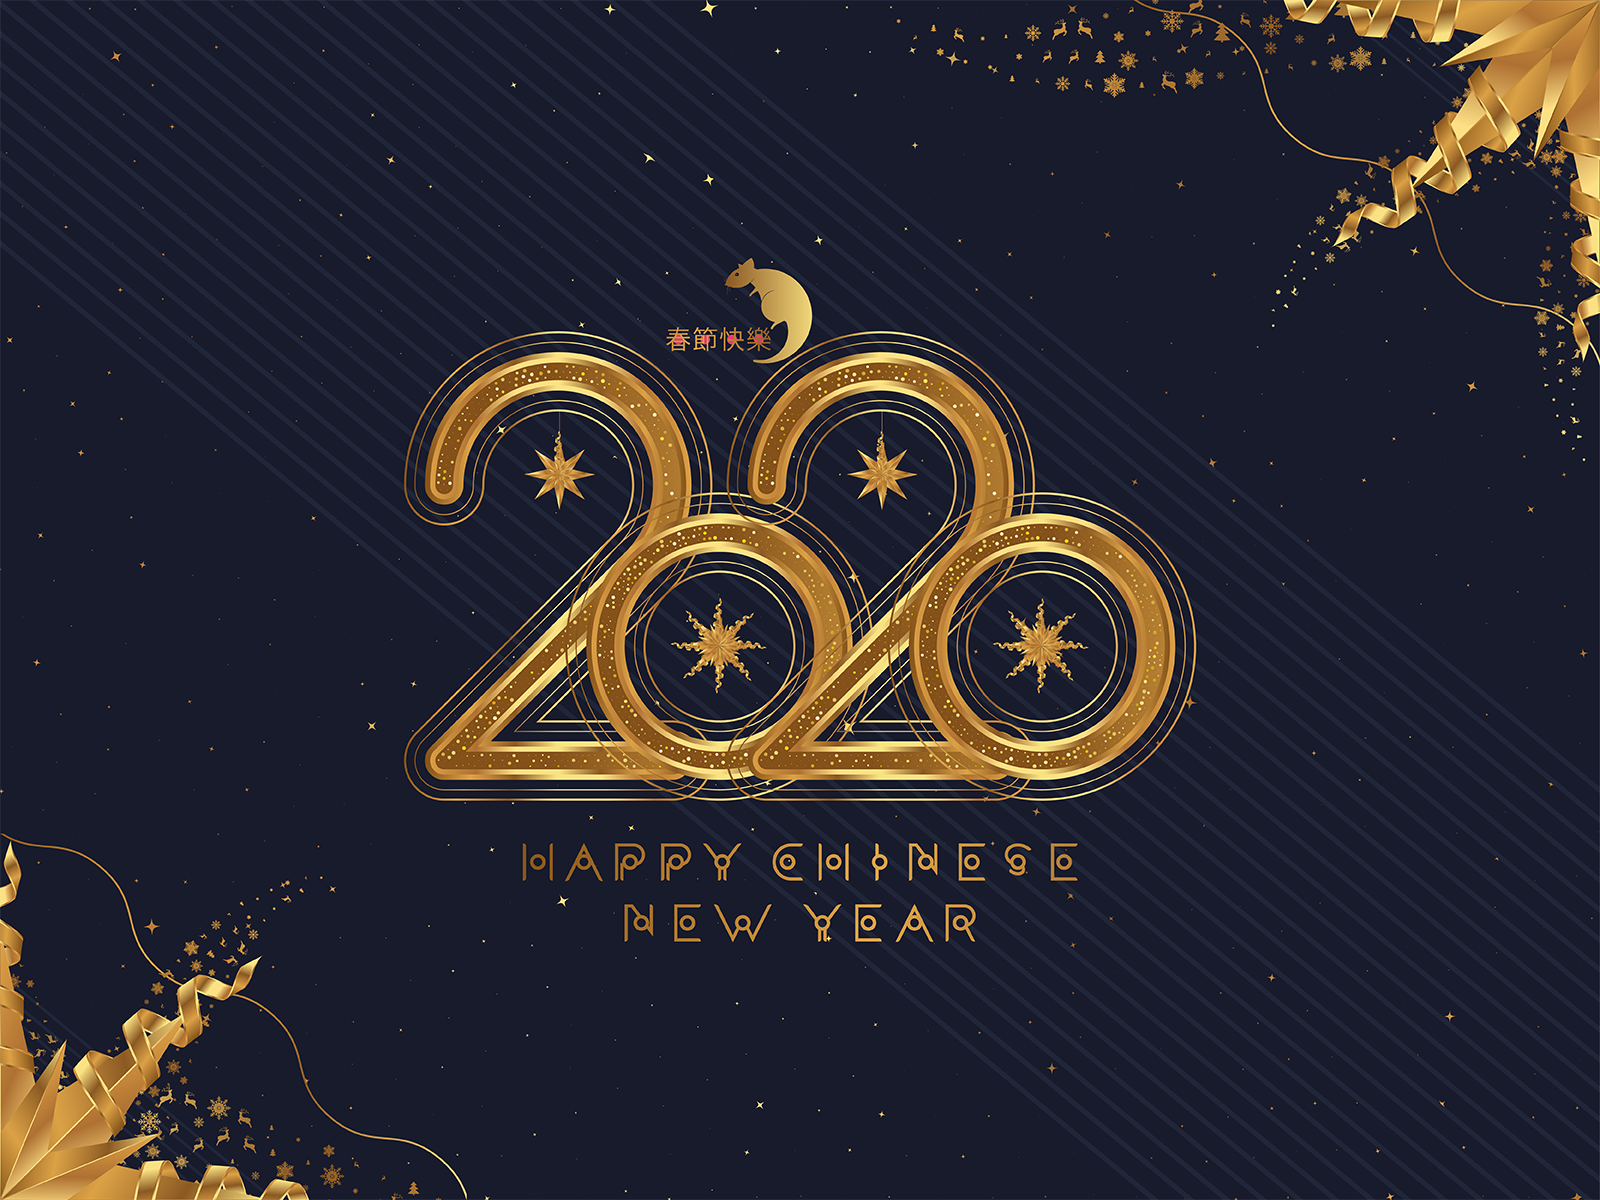 2020 Chinese New Year by VADISH ZAINER on Dribbble